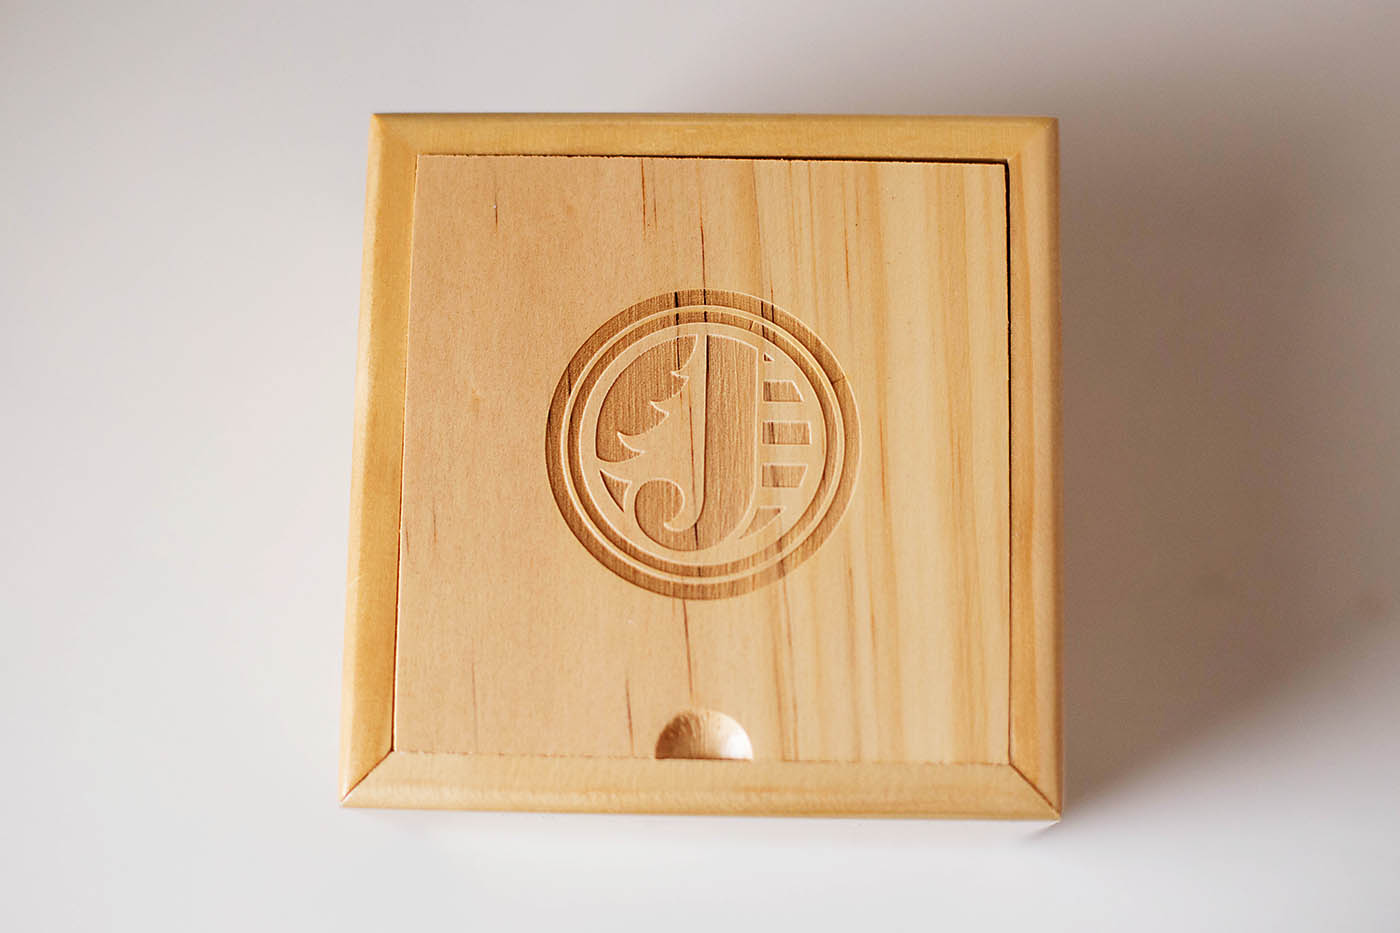 JORD wooden watches - truly gorgeous and a great gift idea for anyone!